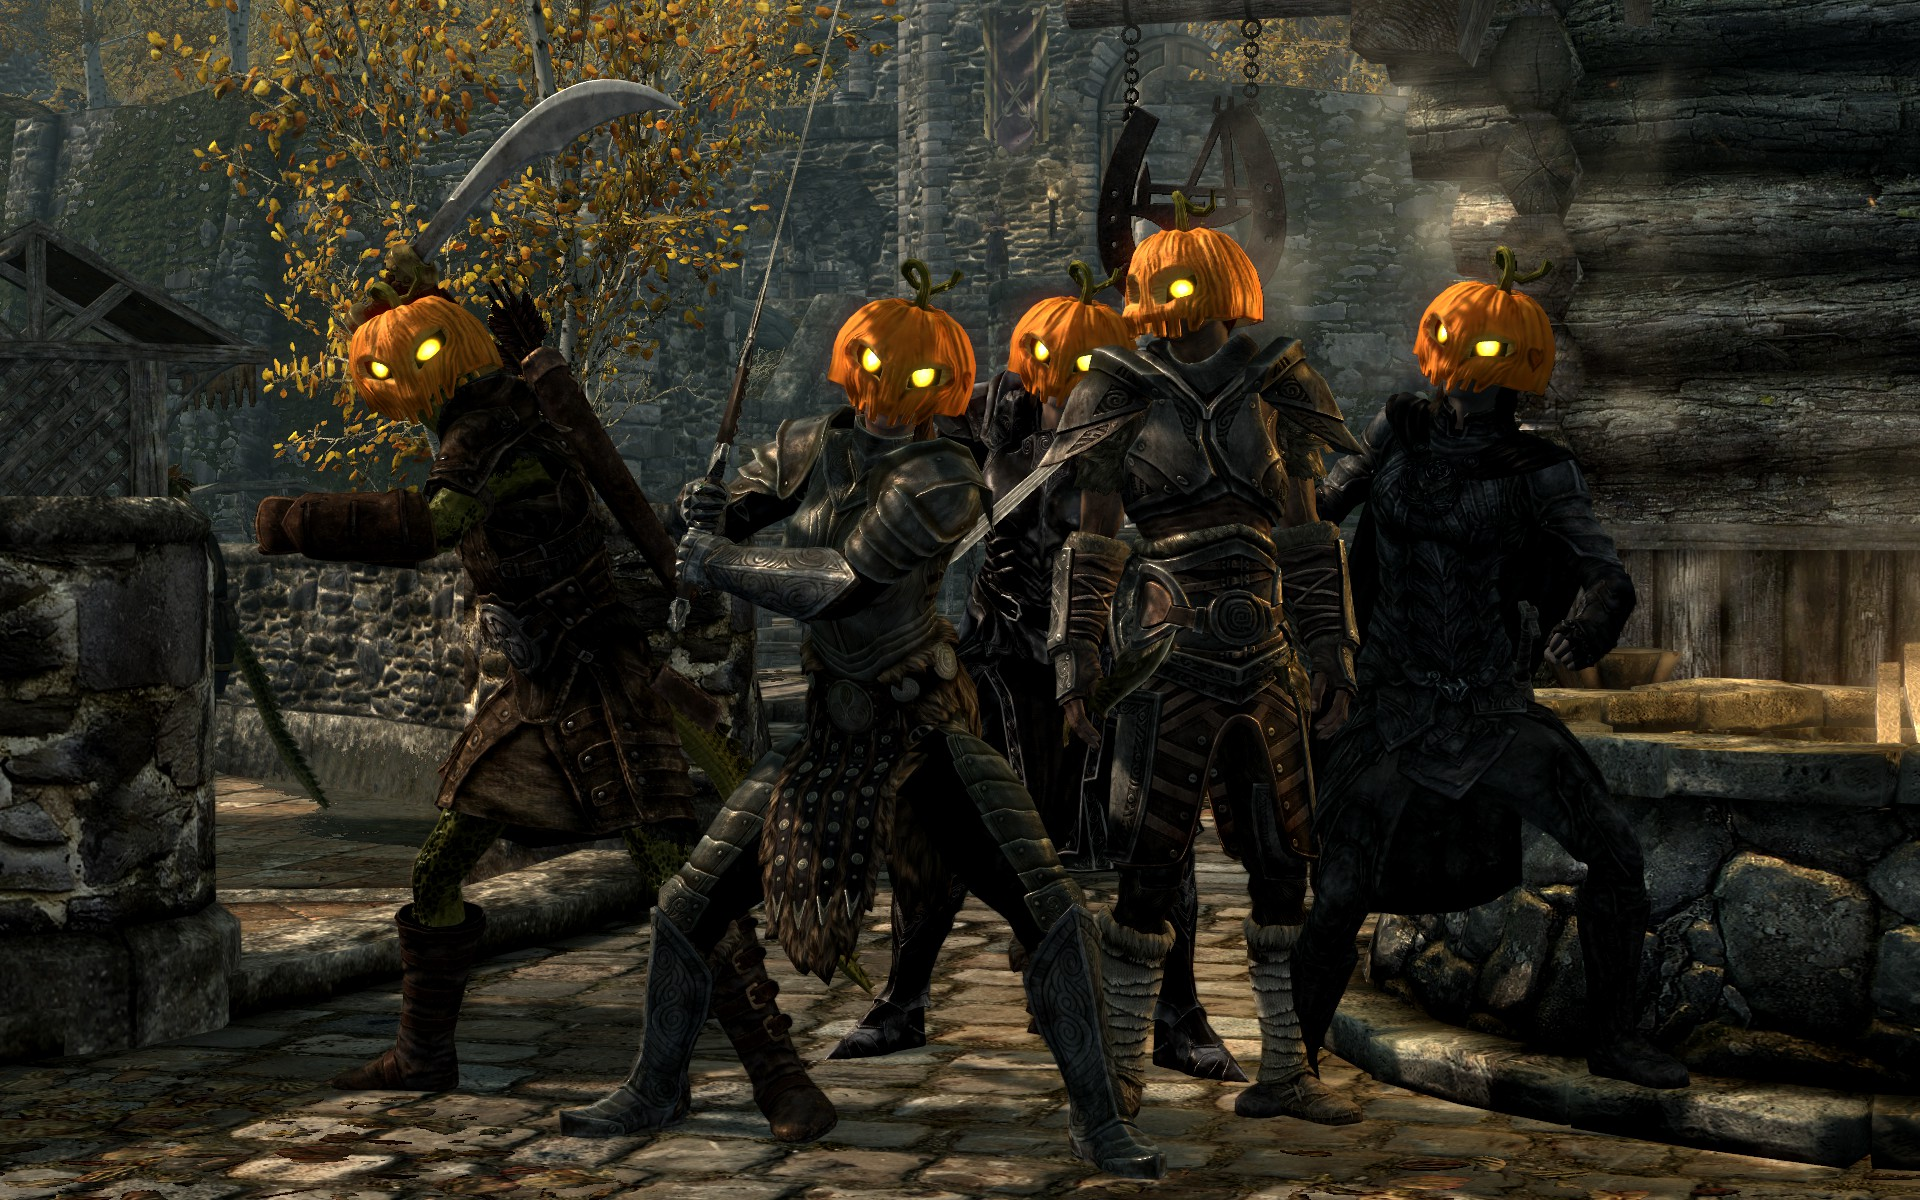 how to kill important npcs in skyrim with mods